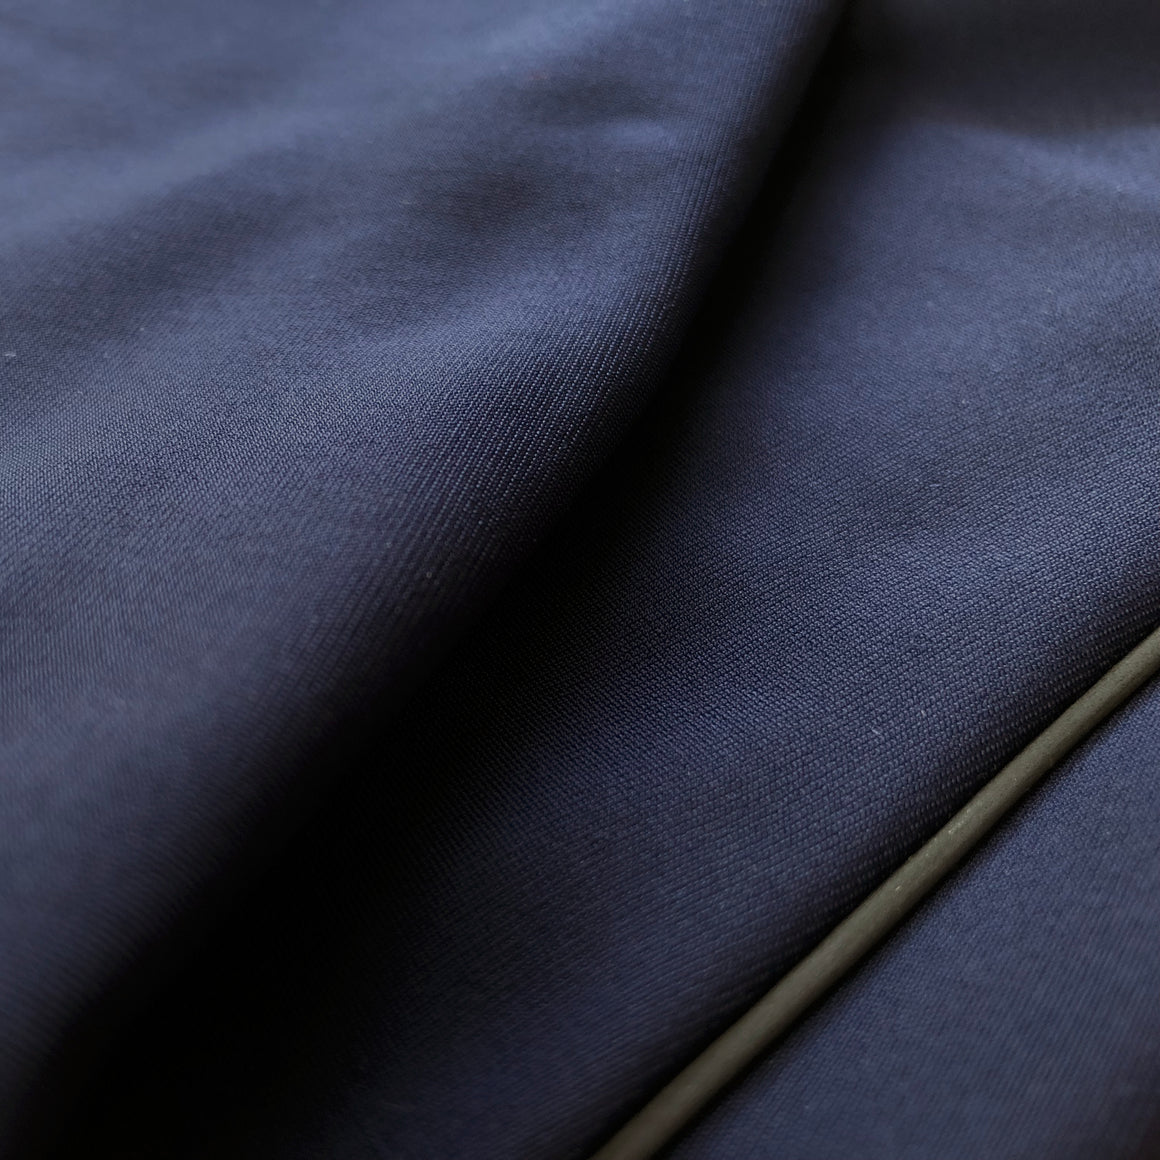 Essential Arm Warmers — Roubaix Thermal — Dark Navy